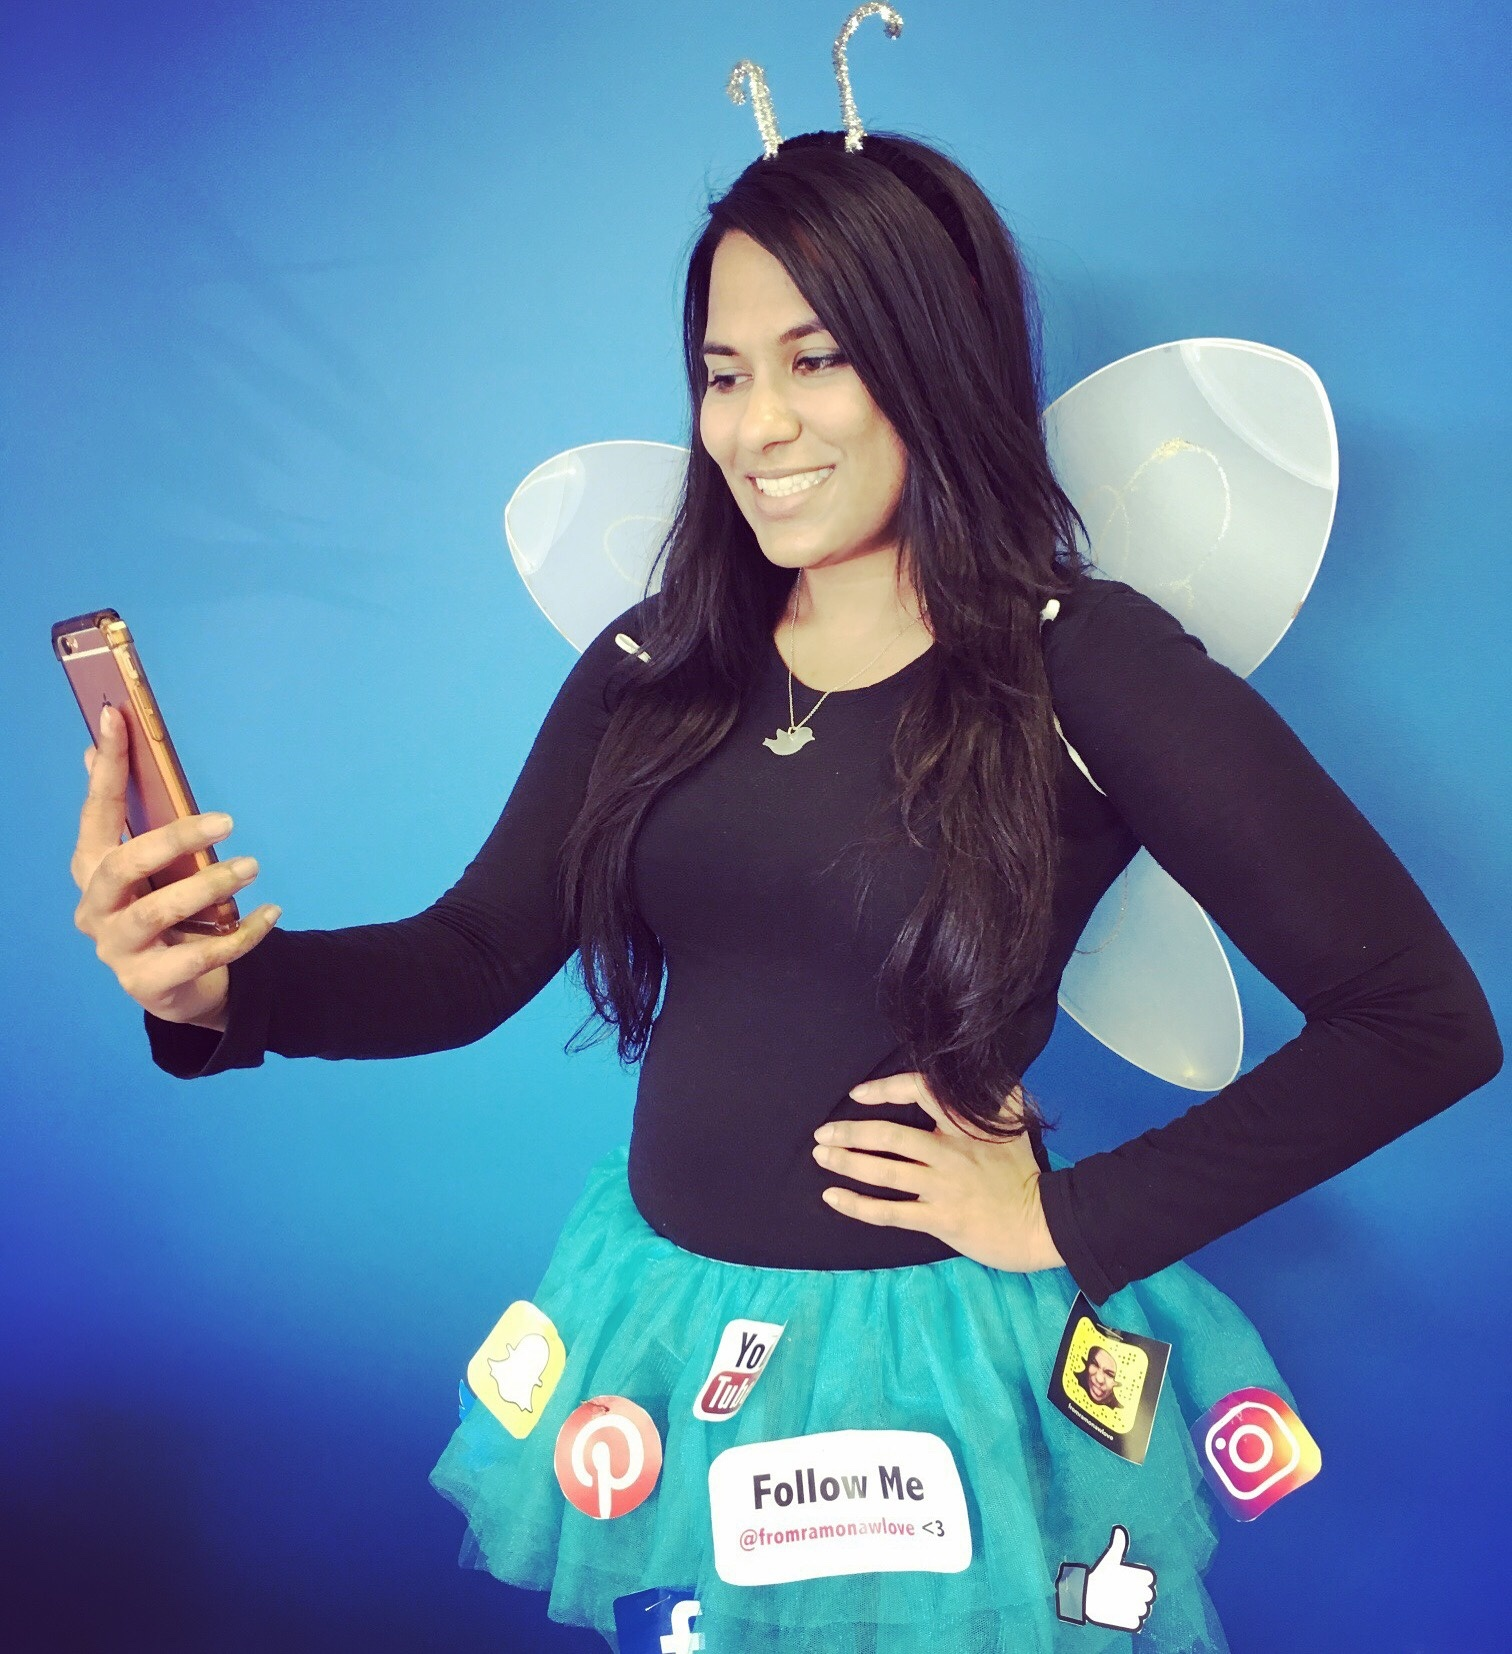 work-friendly-halloween-costumes-for-marketers-social-butterfly.jpg